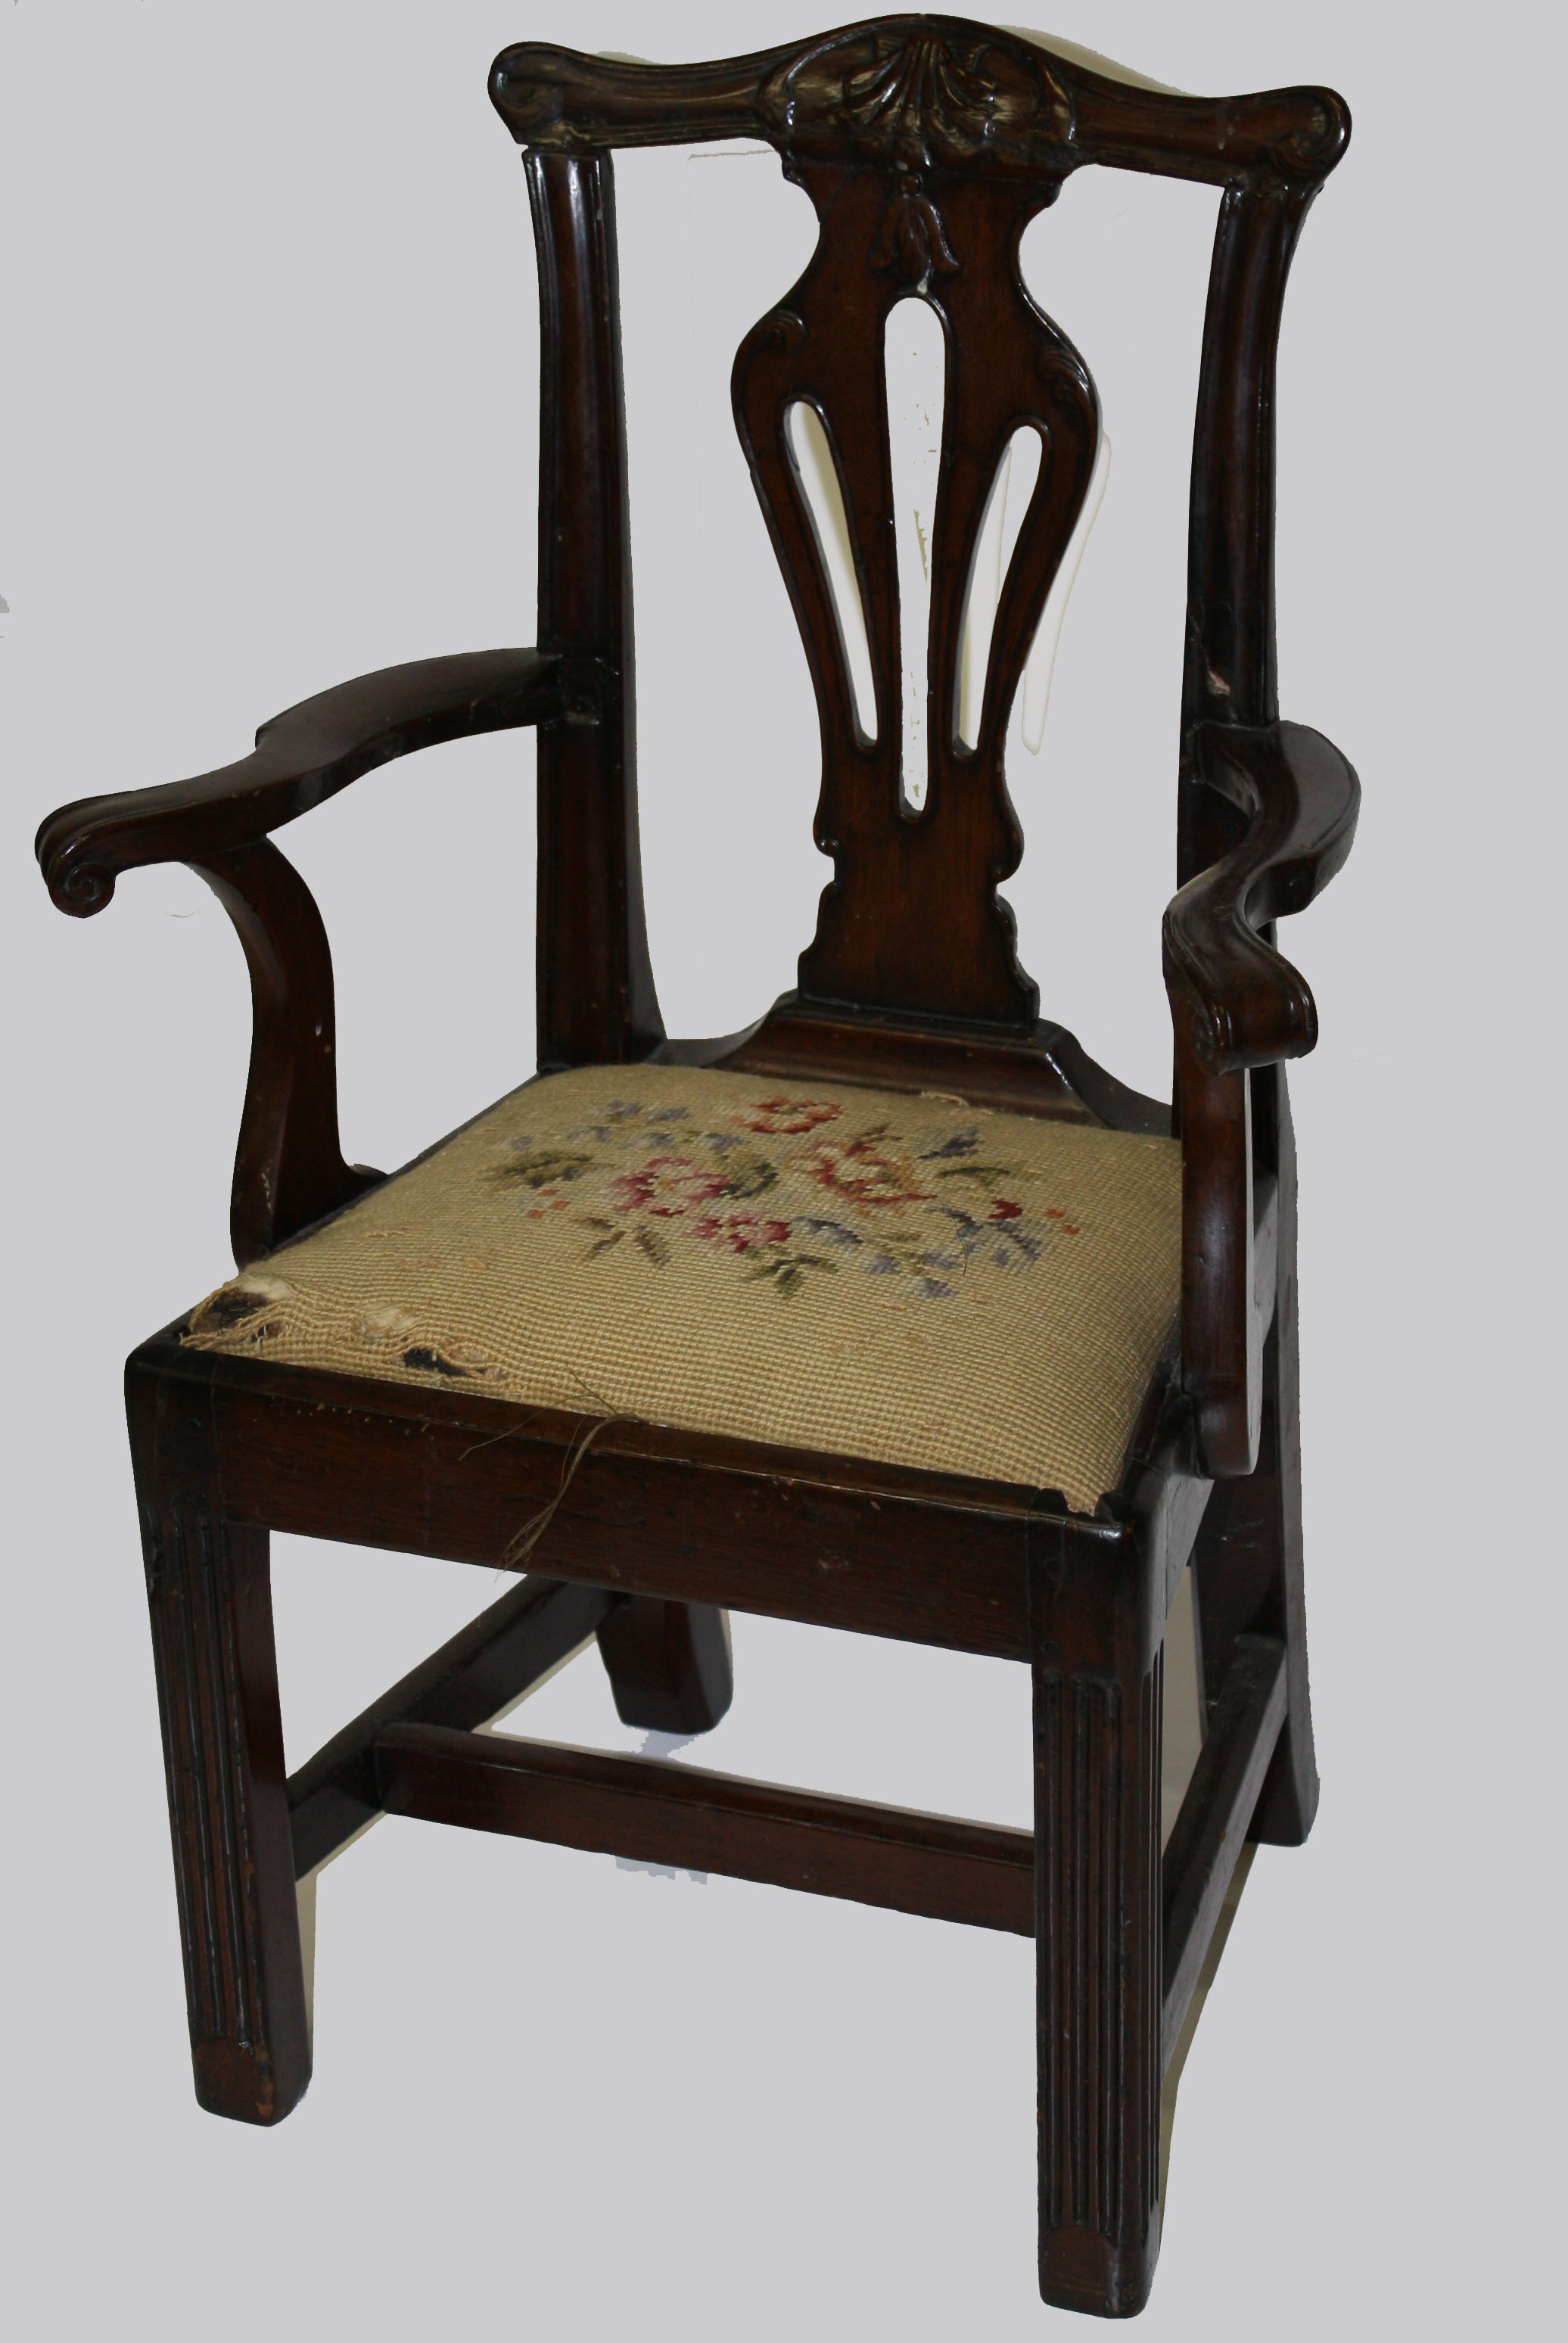 the chippendale chair essay You have not saved any essays in new france, furniture styles were inspired by those that were current in france their characteristic features - exuberant lines, harmonious proportions and.